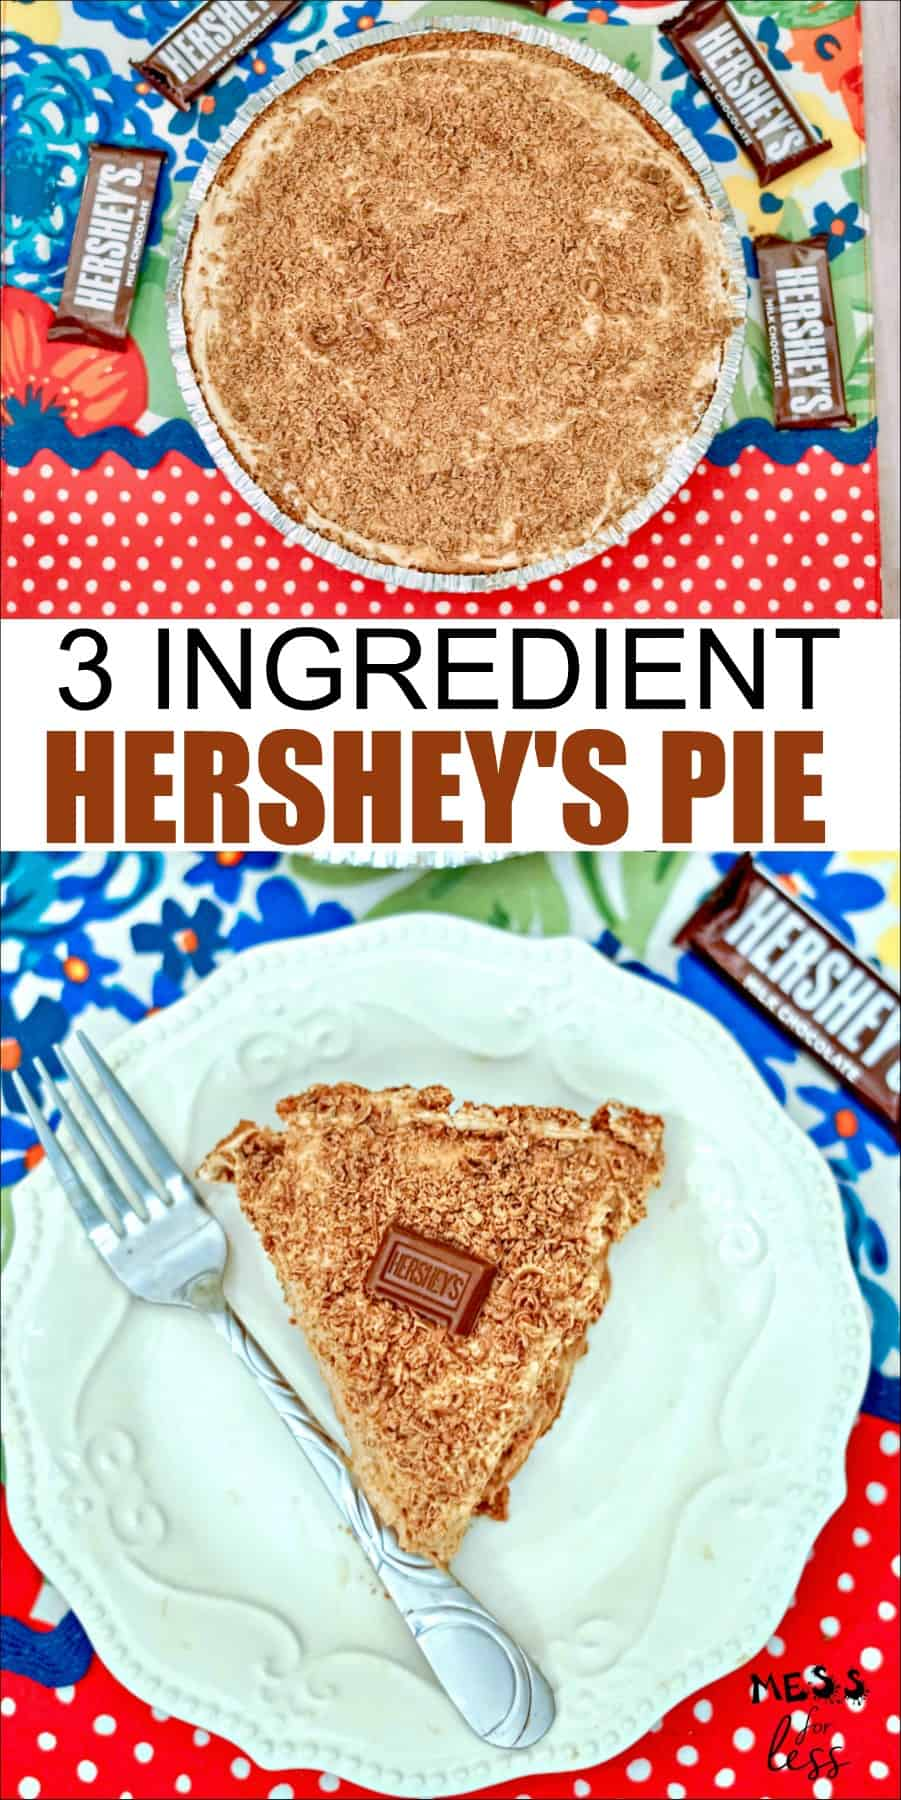 This no-bake 3 Ingredient Hershey's Chocolate Pie is the perfect dessert to make when you are in a hurry, or just don't want to spend a lot of time making a complicated dessert. Delicious and full of chocolate flavor! #nobakepie #chocolatepie #hersheyspie